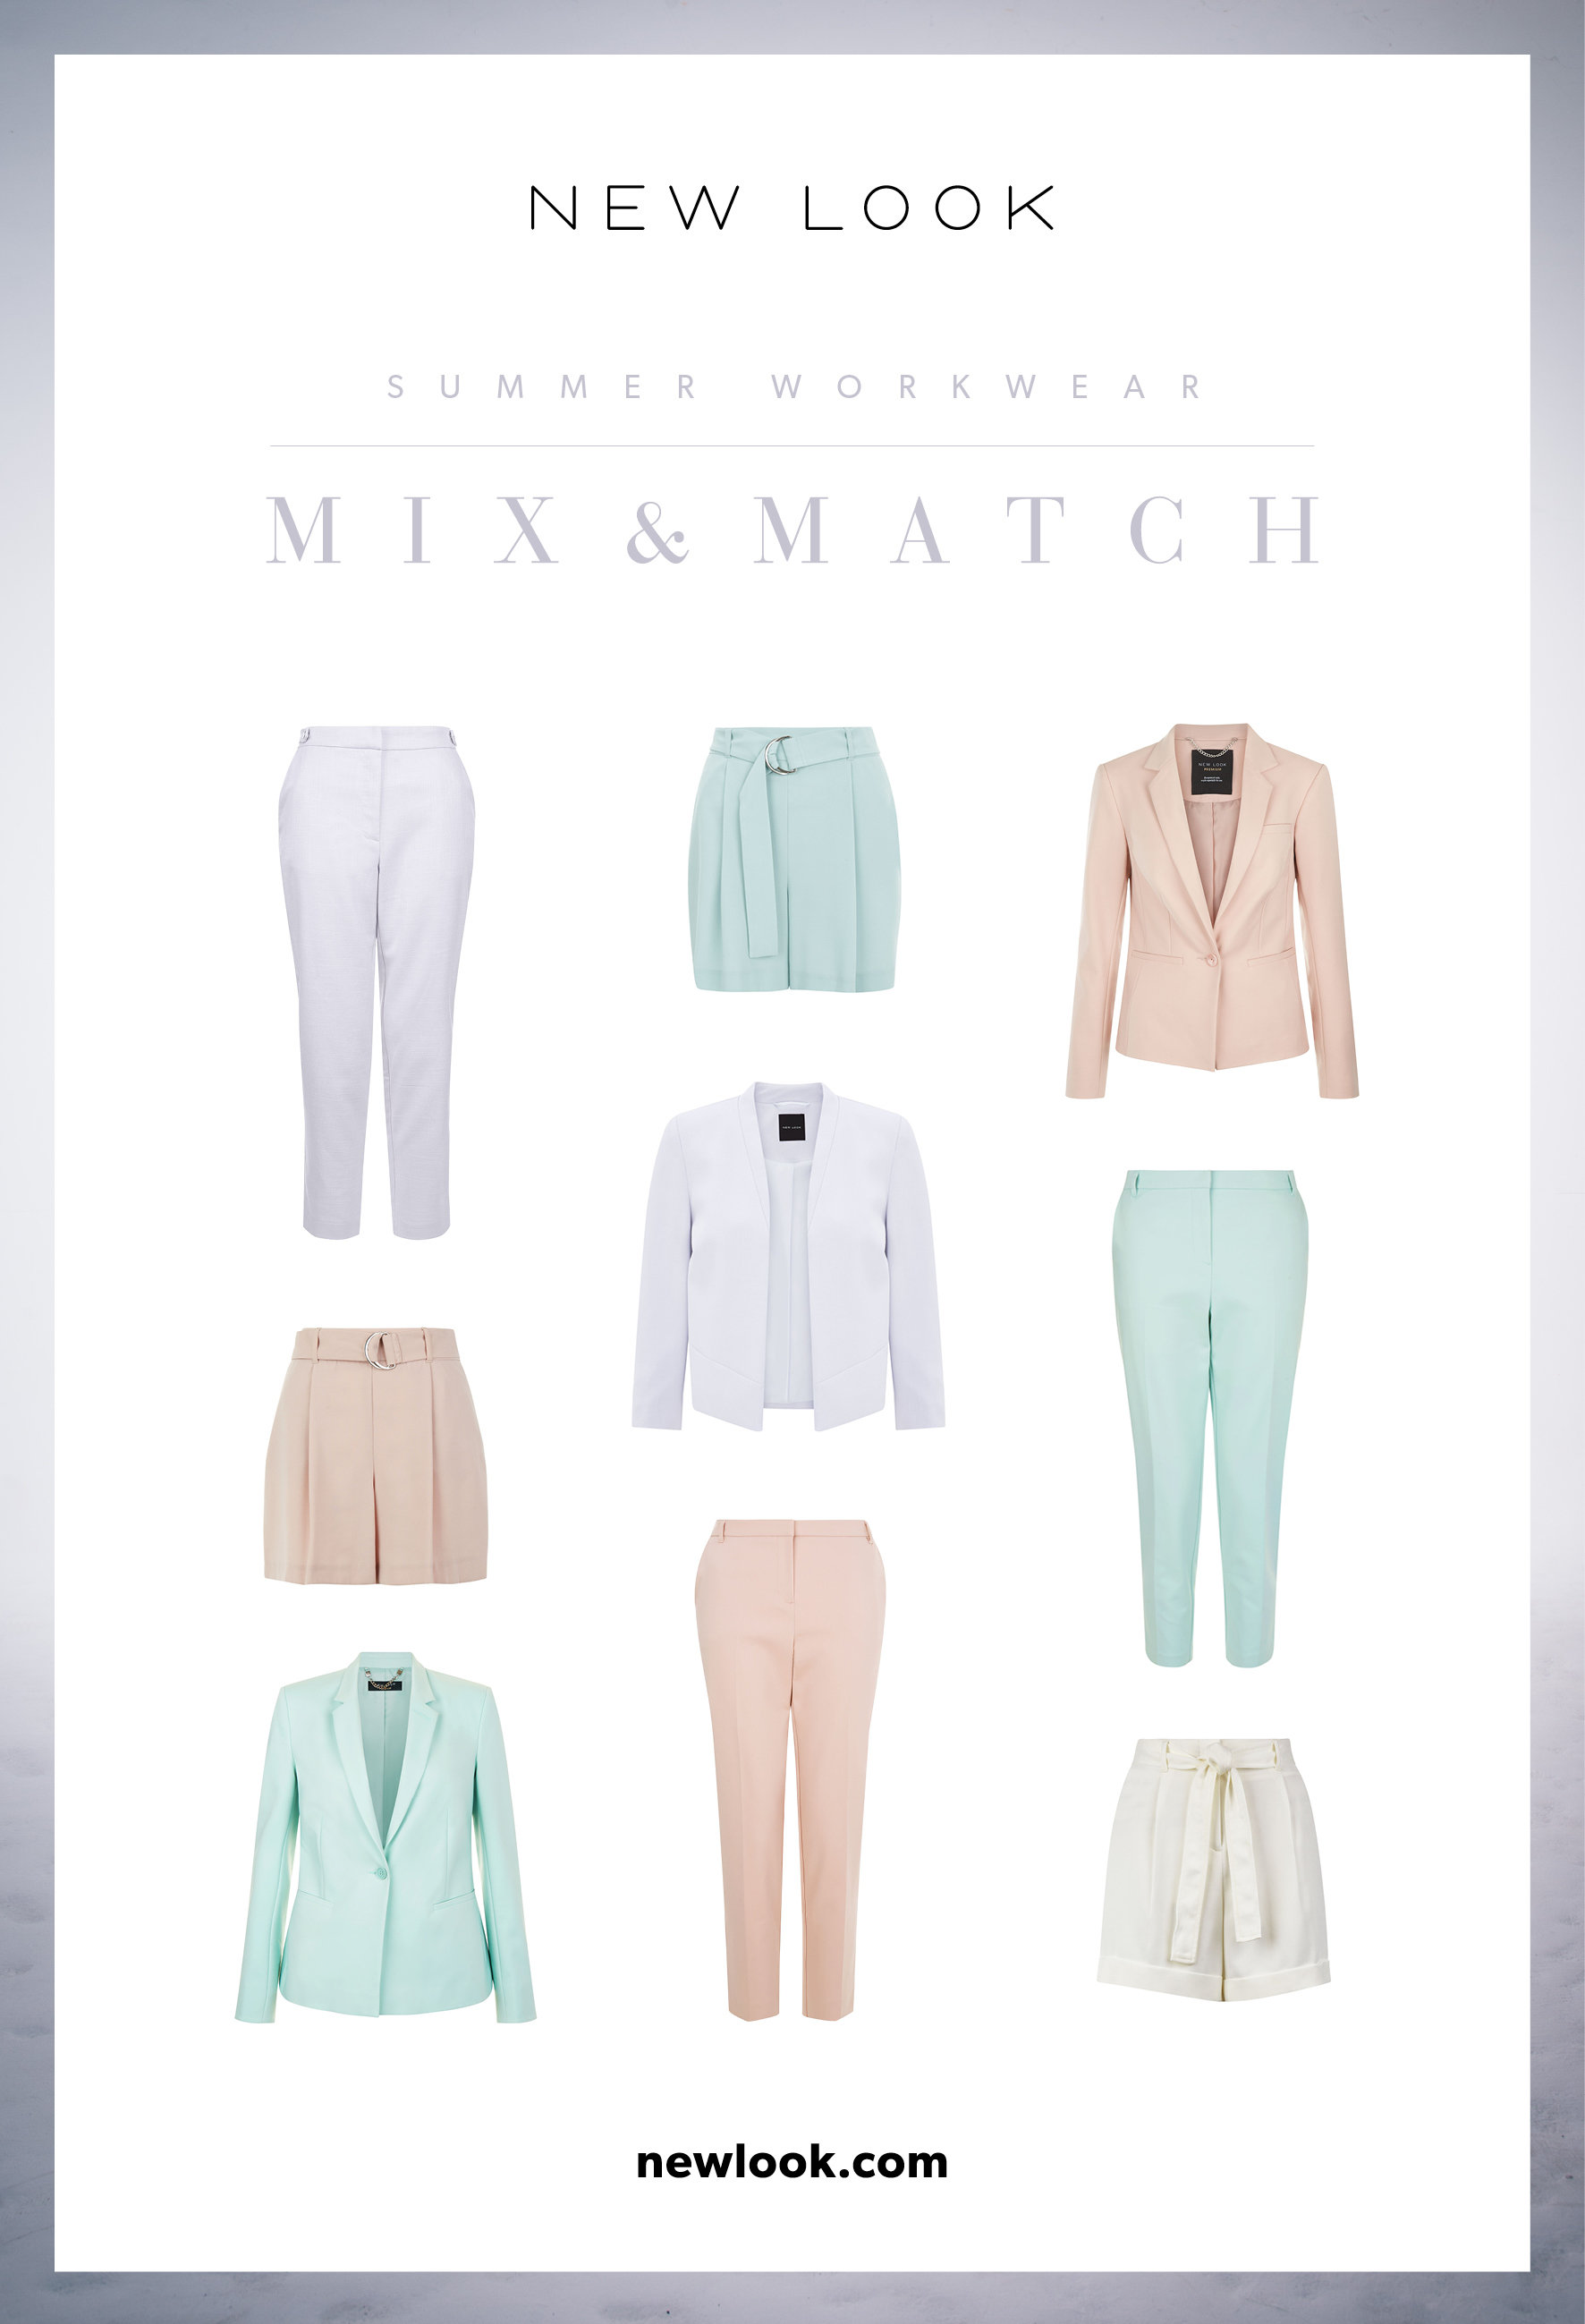 MIX&MATCH OD NEW LOOK